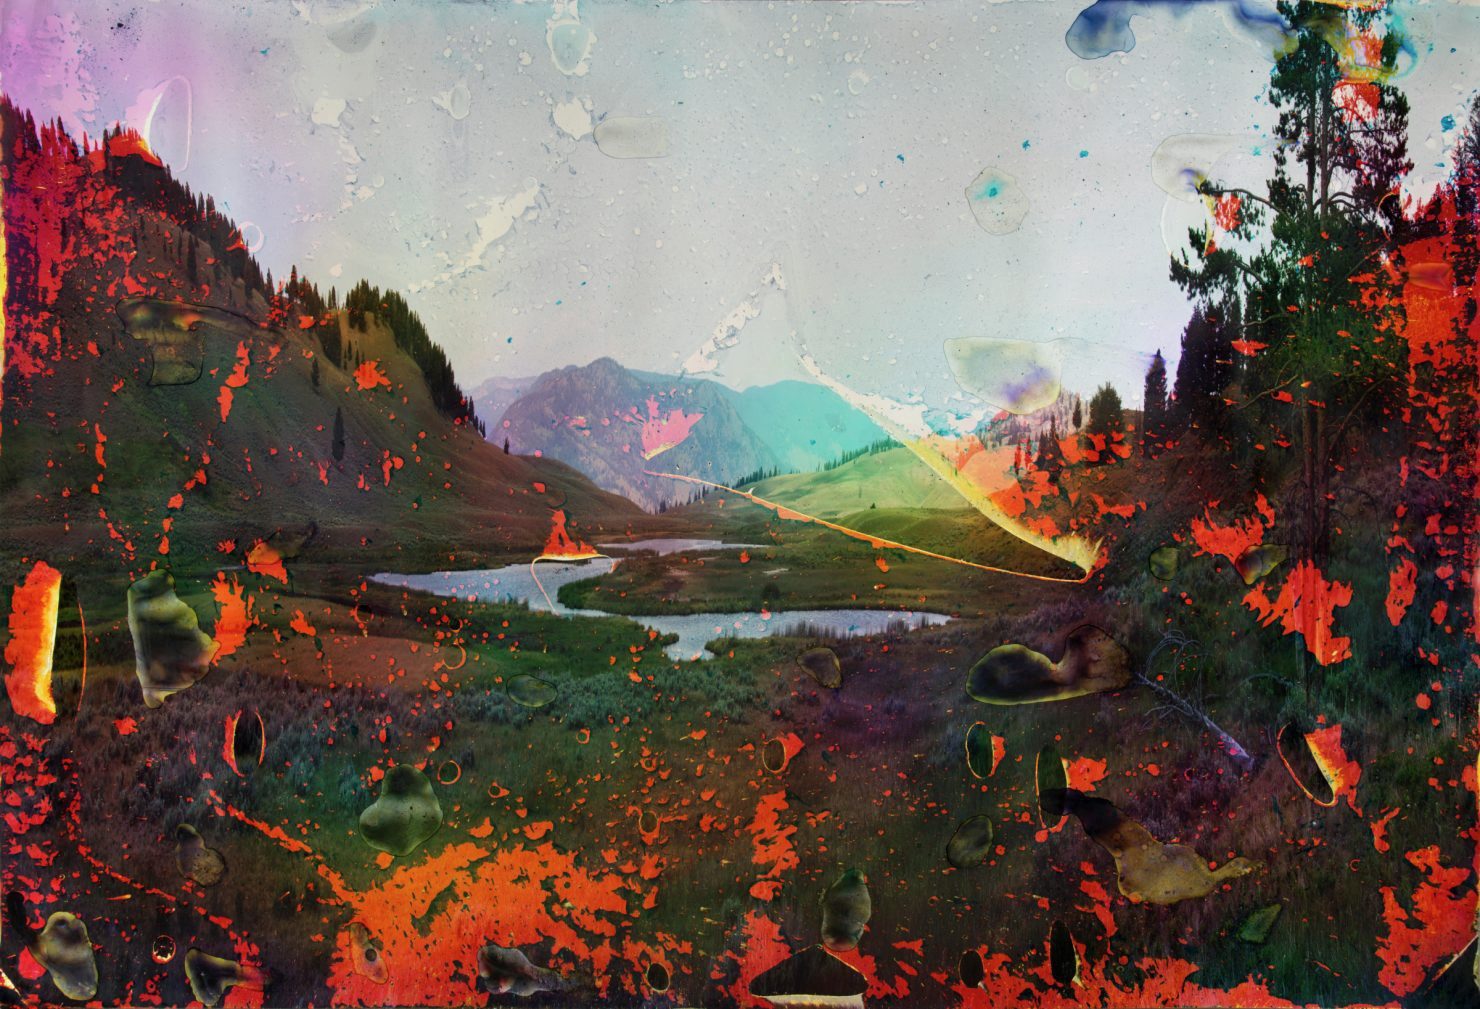 A mountainous lake landscape displays bright, bleeding colors that bubble and streak the addition of lake water to the print.